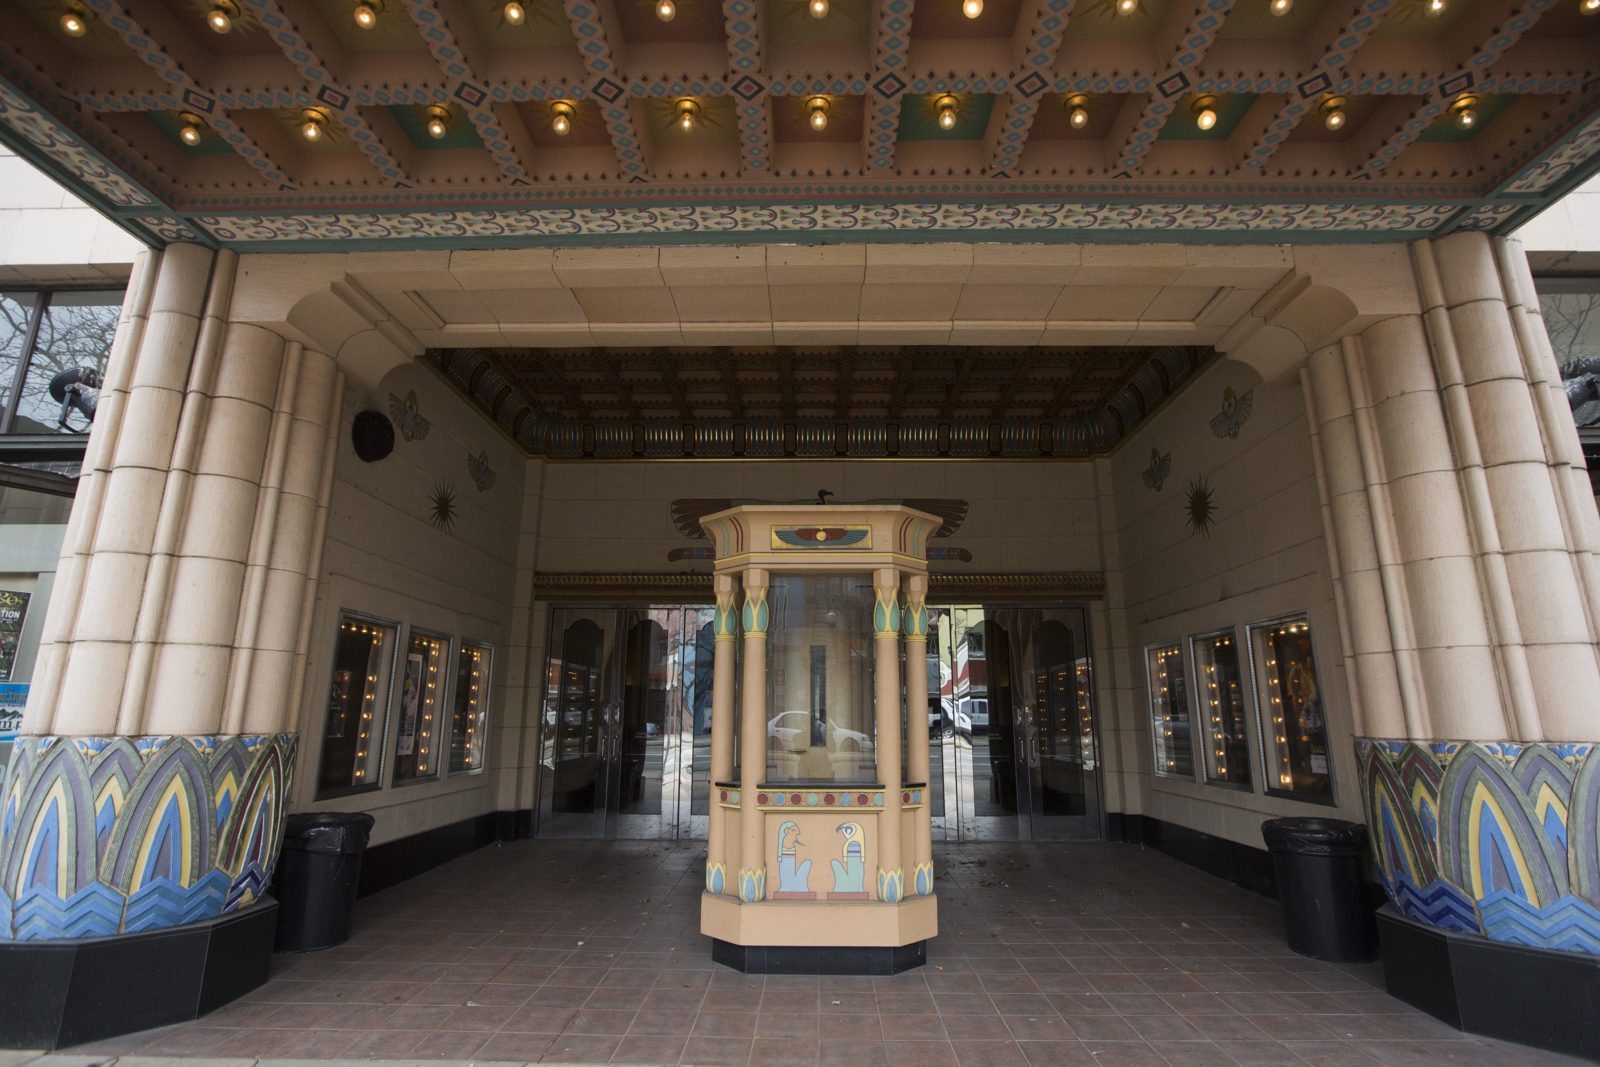 The entrance of the Peery's Egyptian Theater on Wednesday, Feb. 22, 2017, in Ogden. BRIANA SCROGGINS/Standard-Examiner